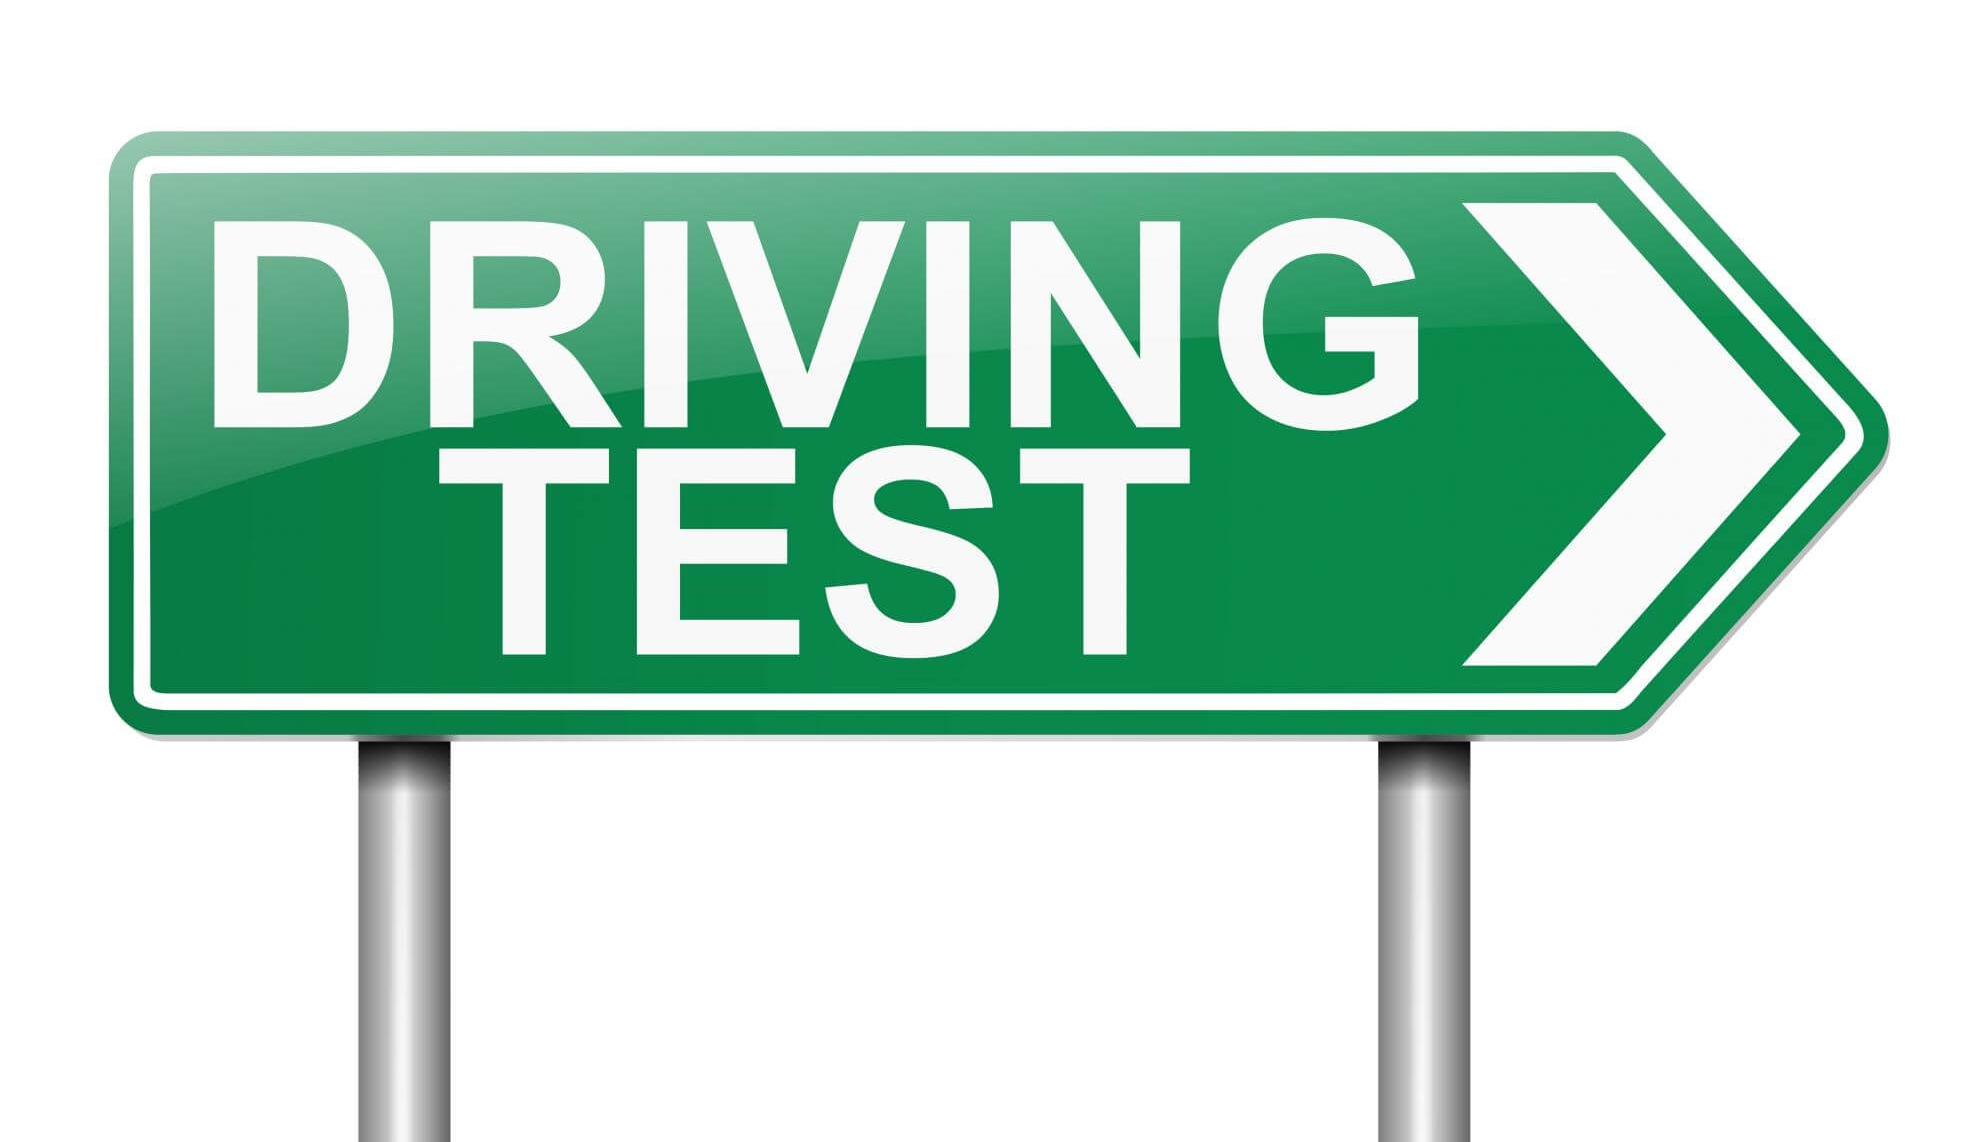 driving-test-post-image.jpg